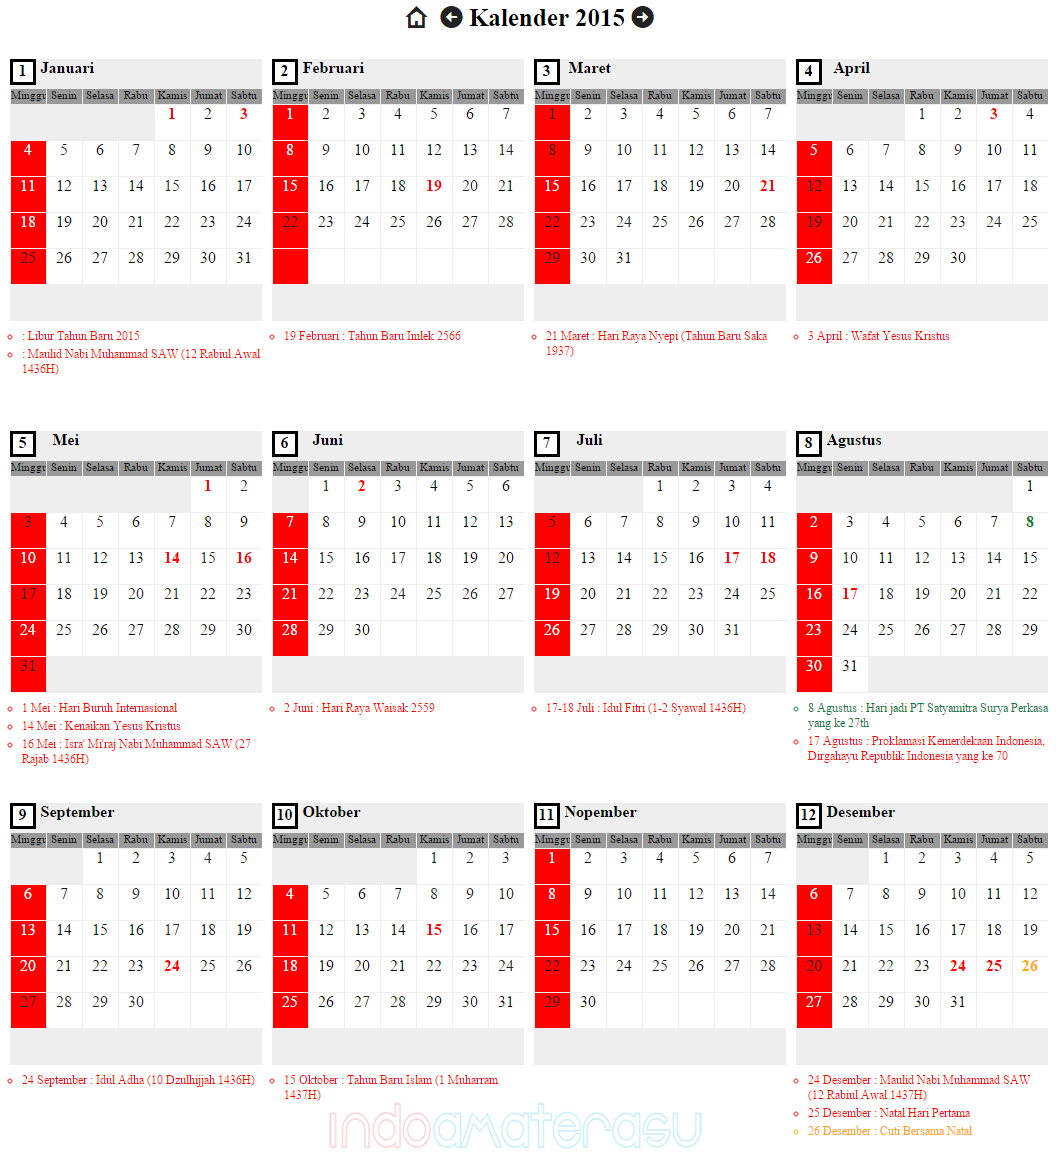 Download Kalender 2015 Plus Hari Libur Nasional